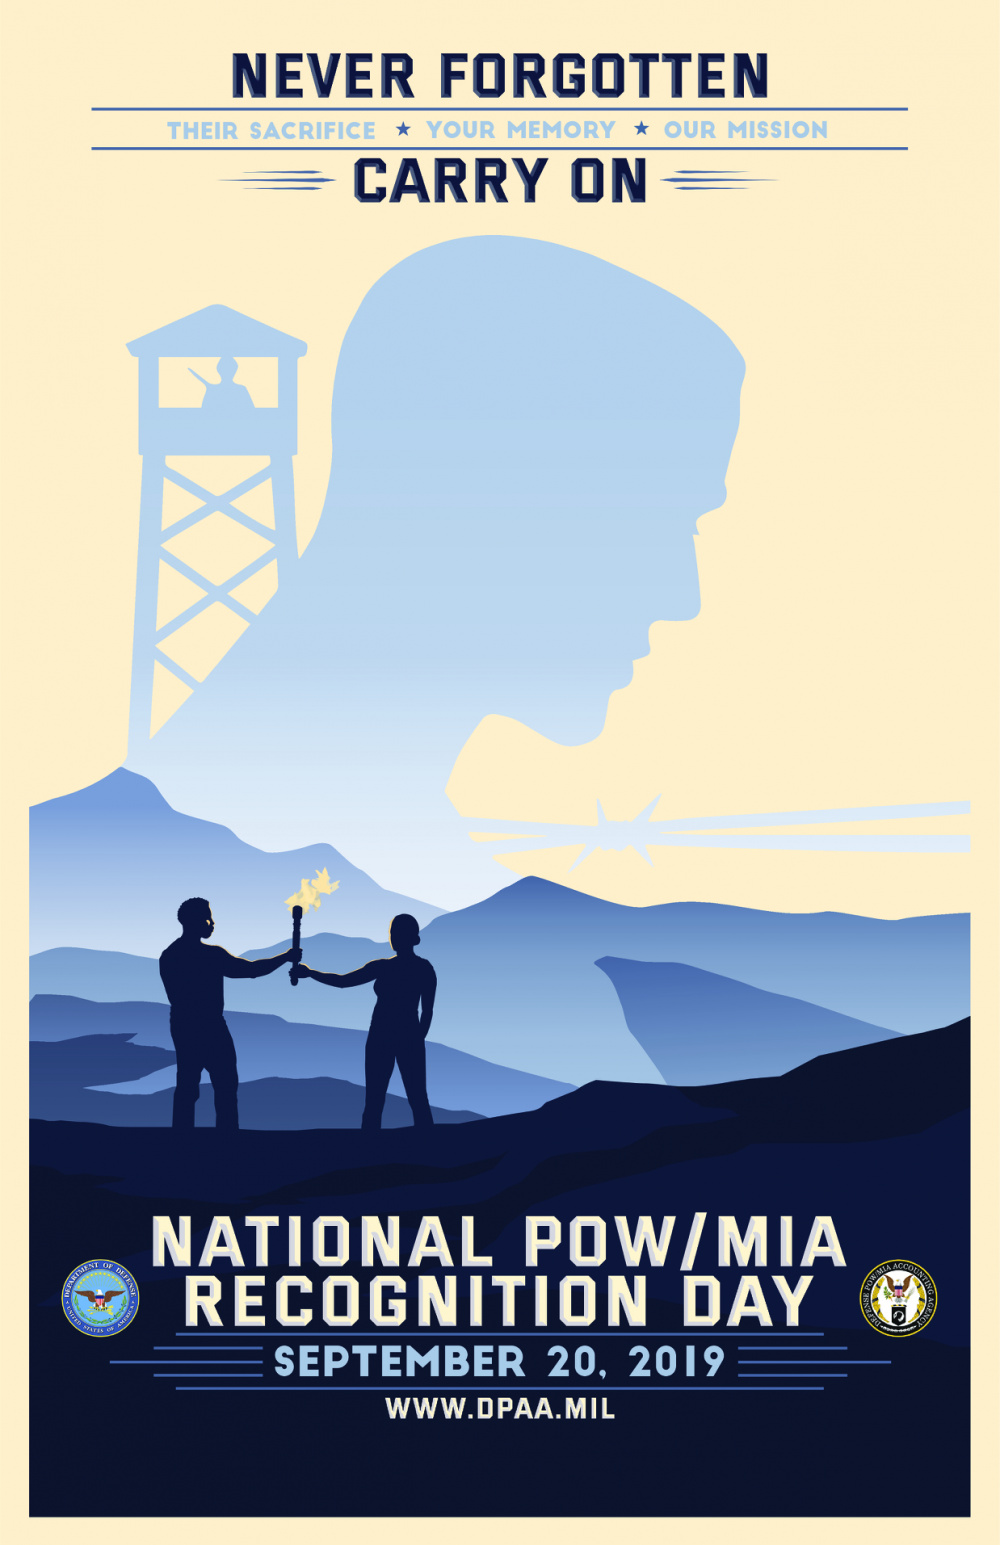 2019 POW/MIA Recognition Day Poster